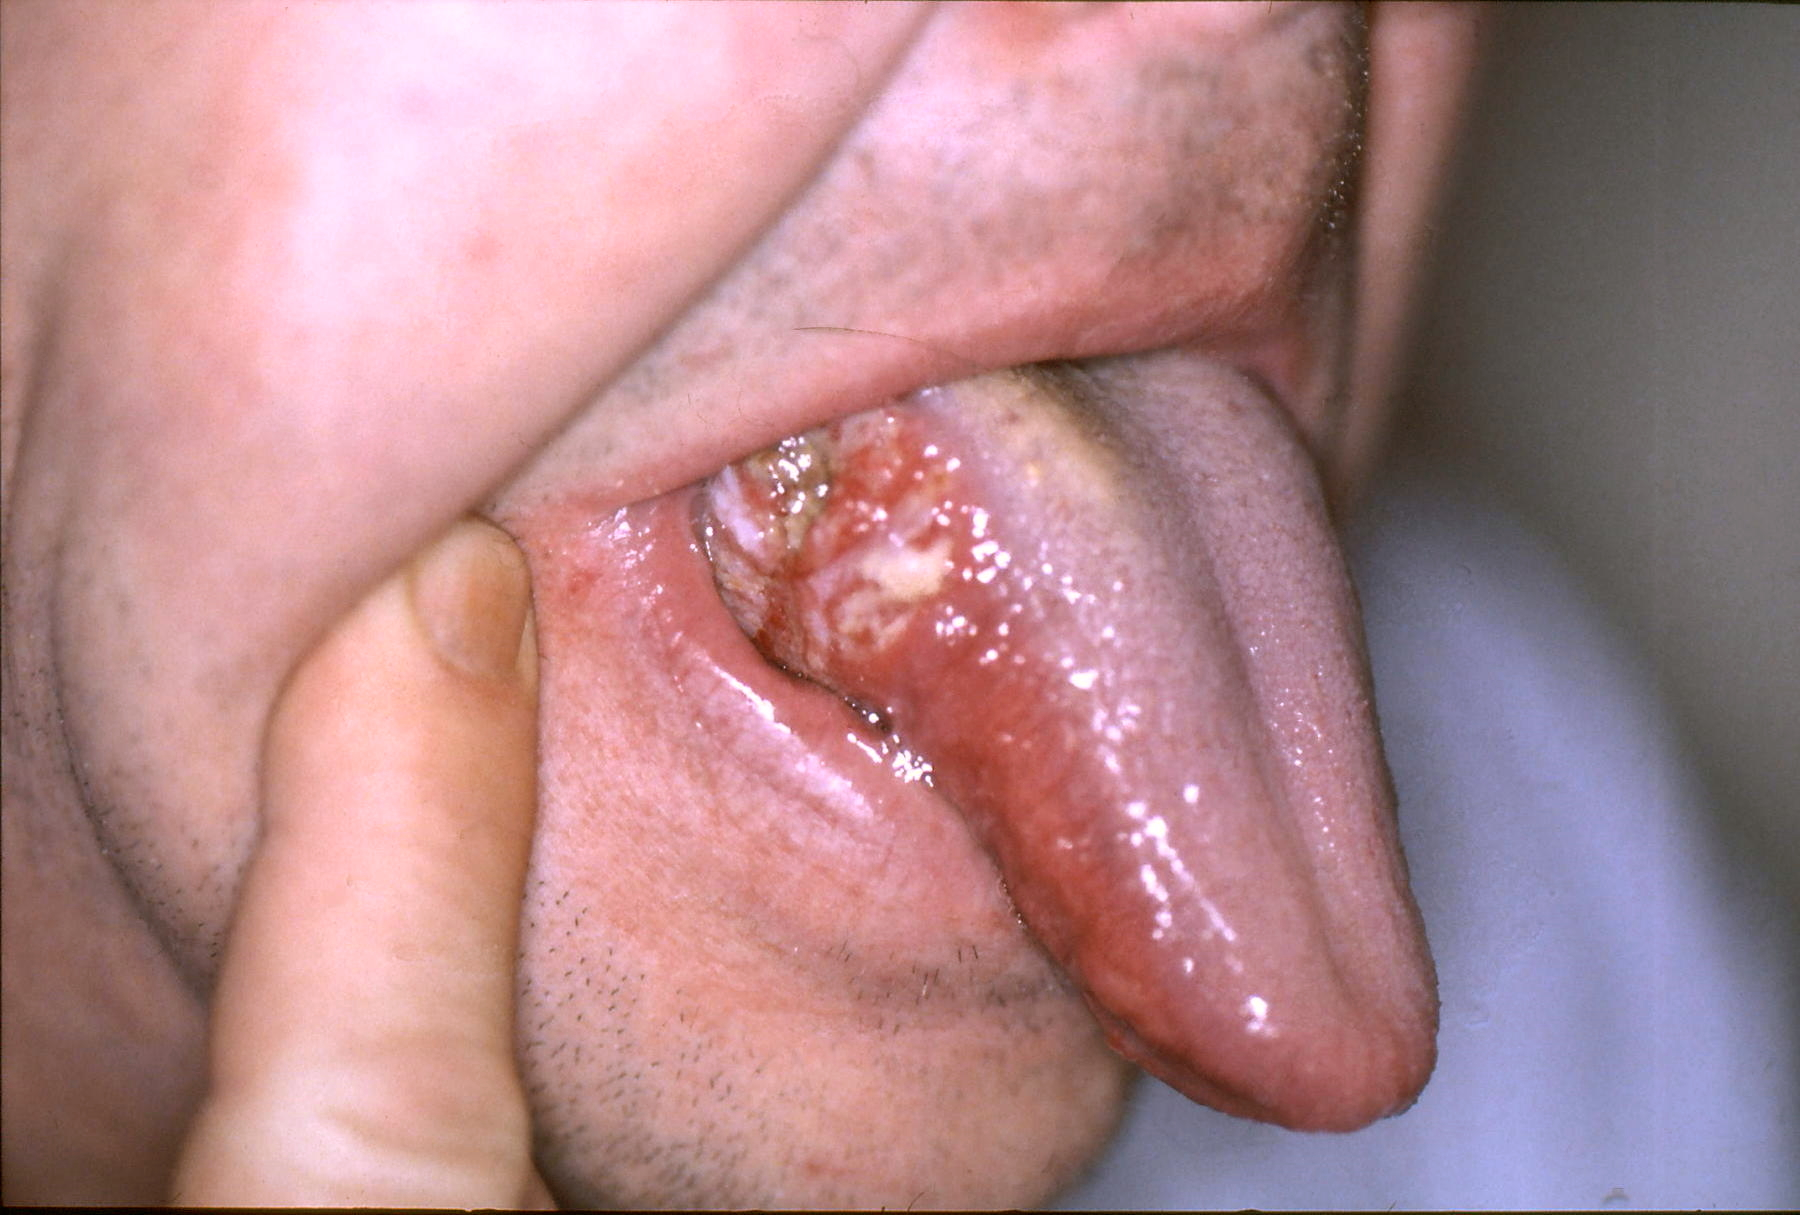 papilloma growth in mouth